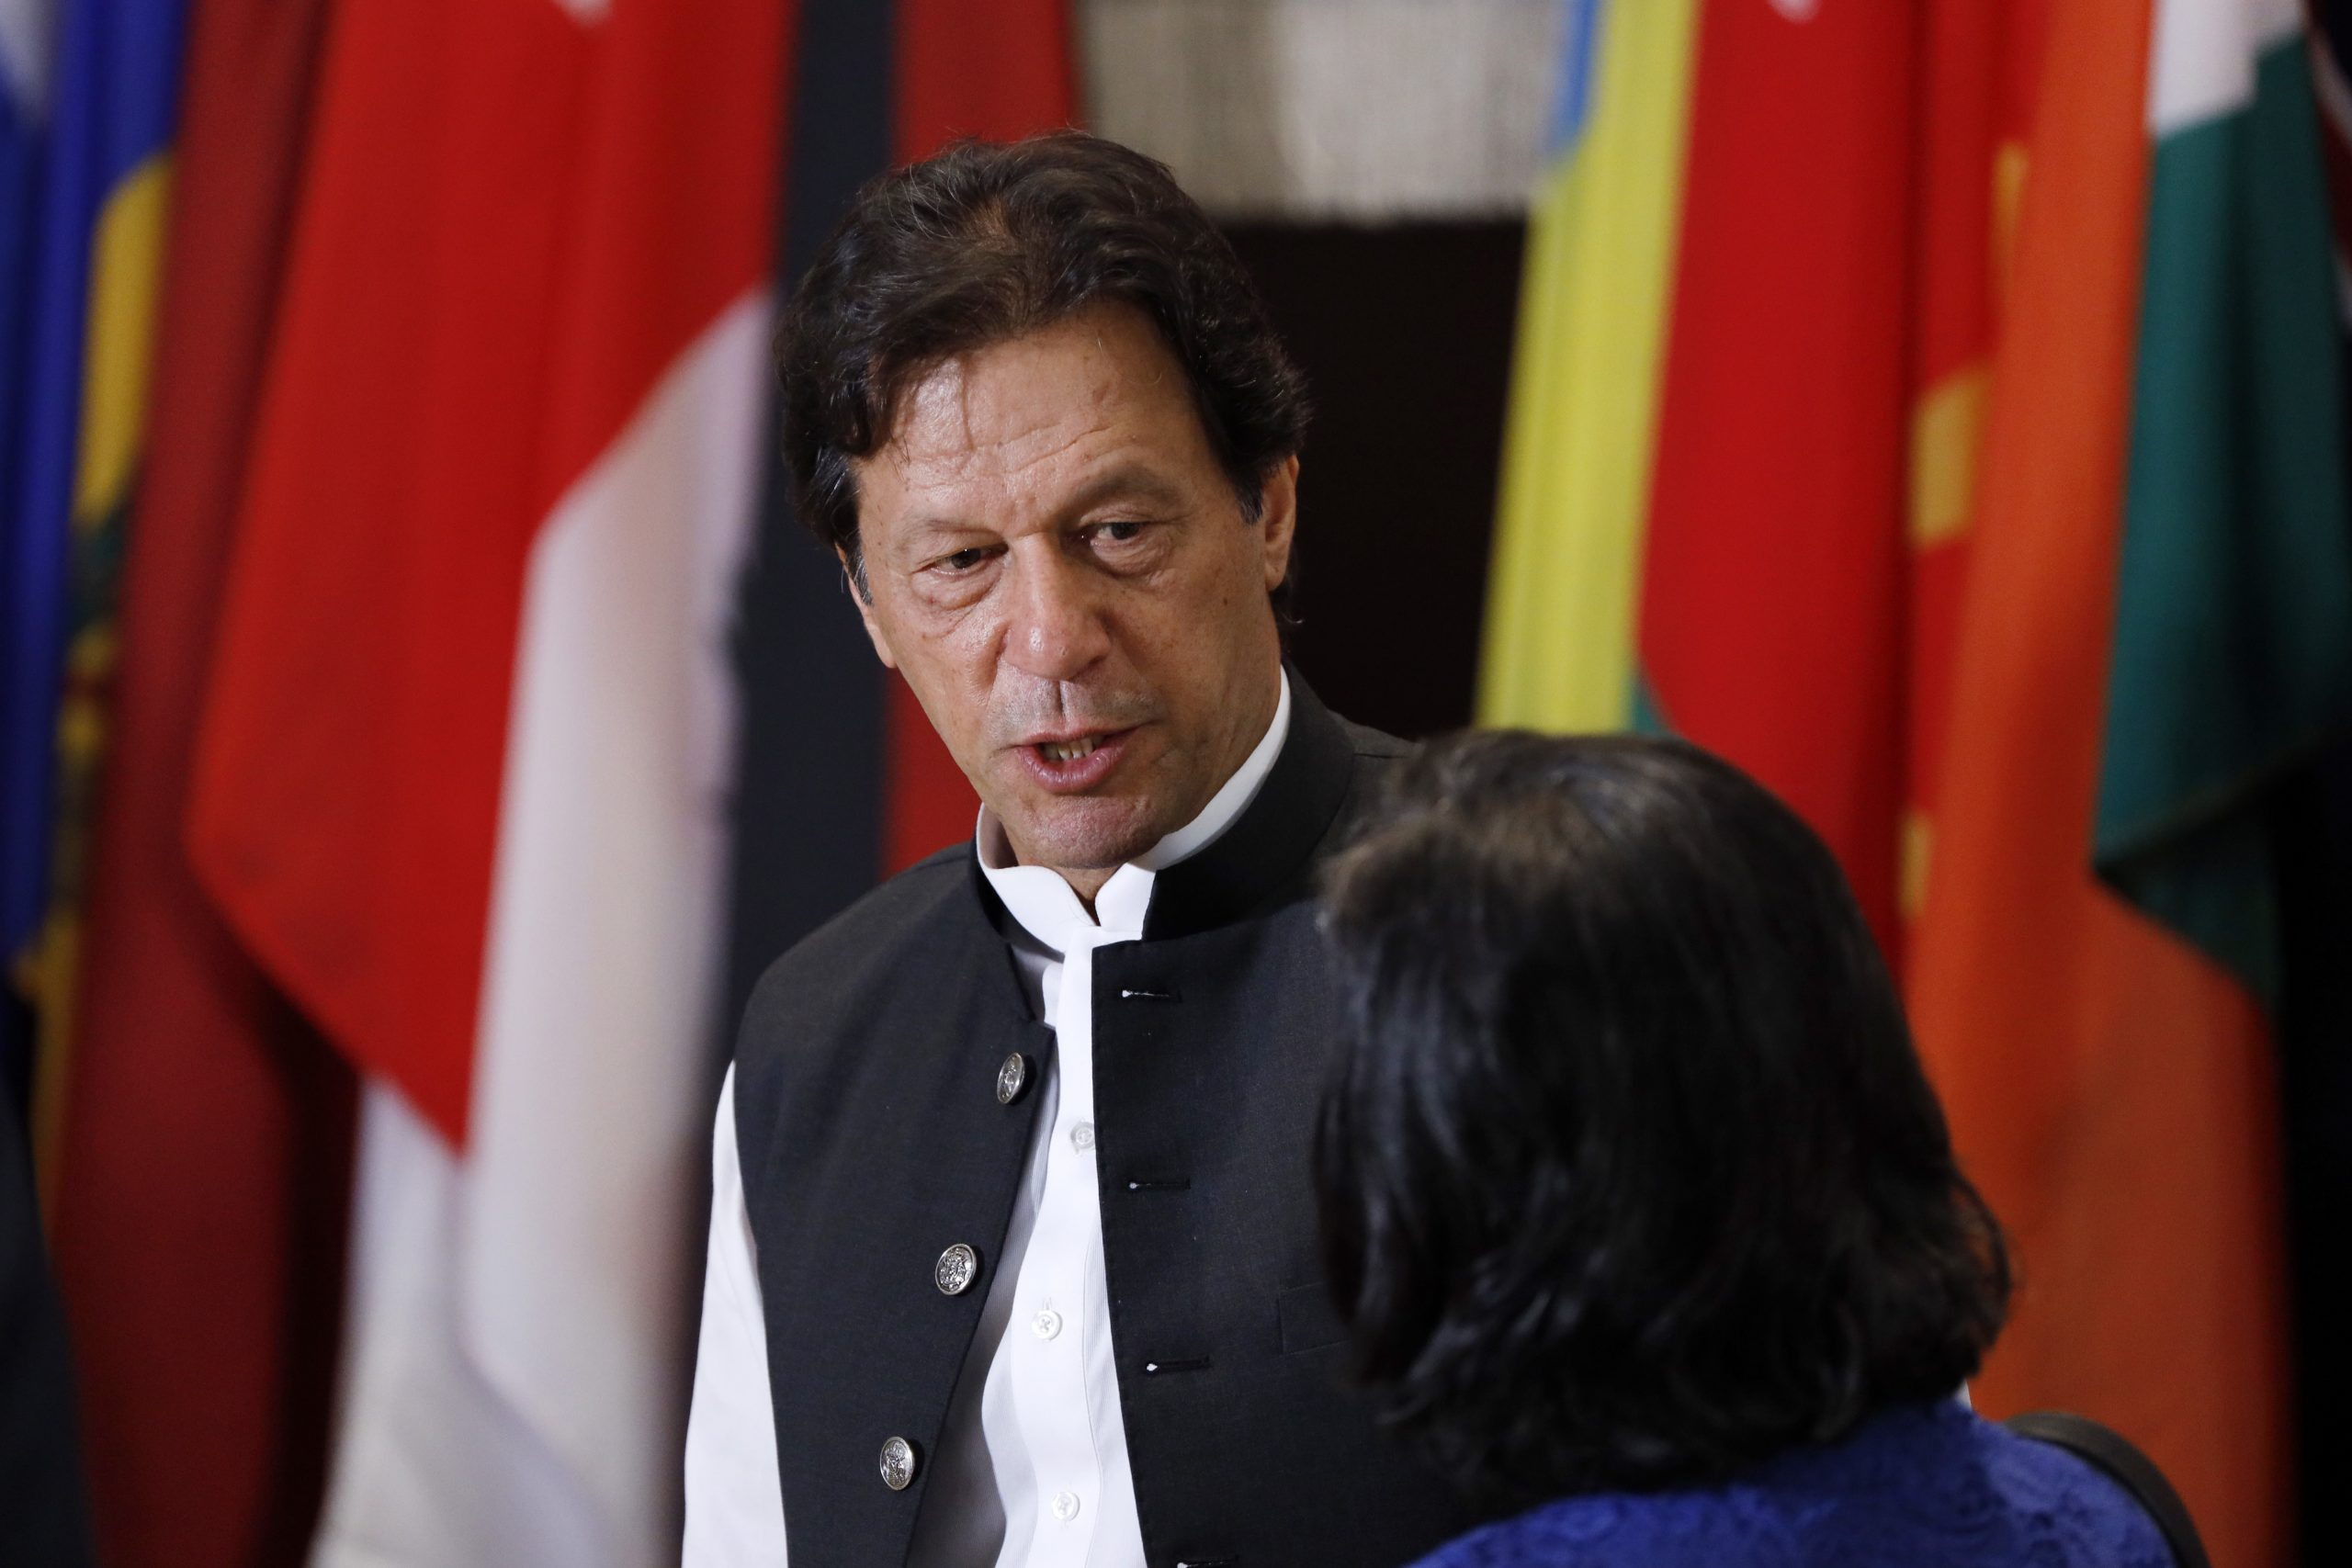 Pakistan PM Imran Khan said the government was closely monitoring the COVID-19 situation.